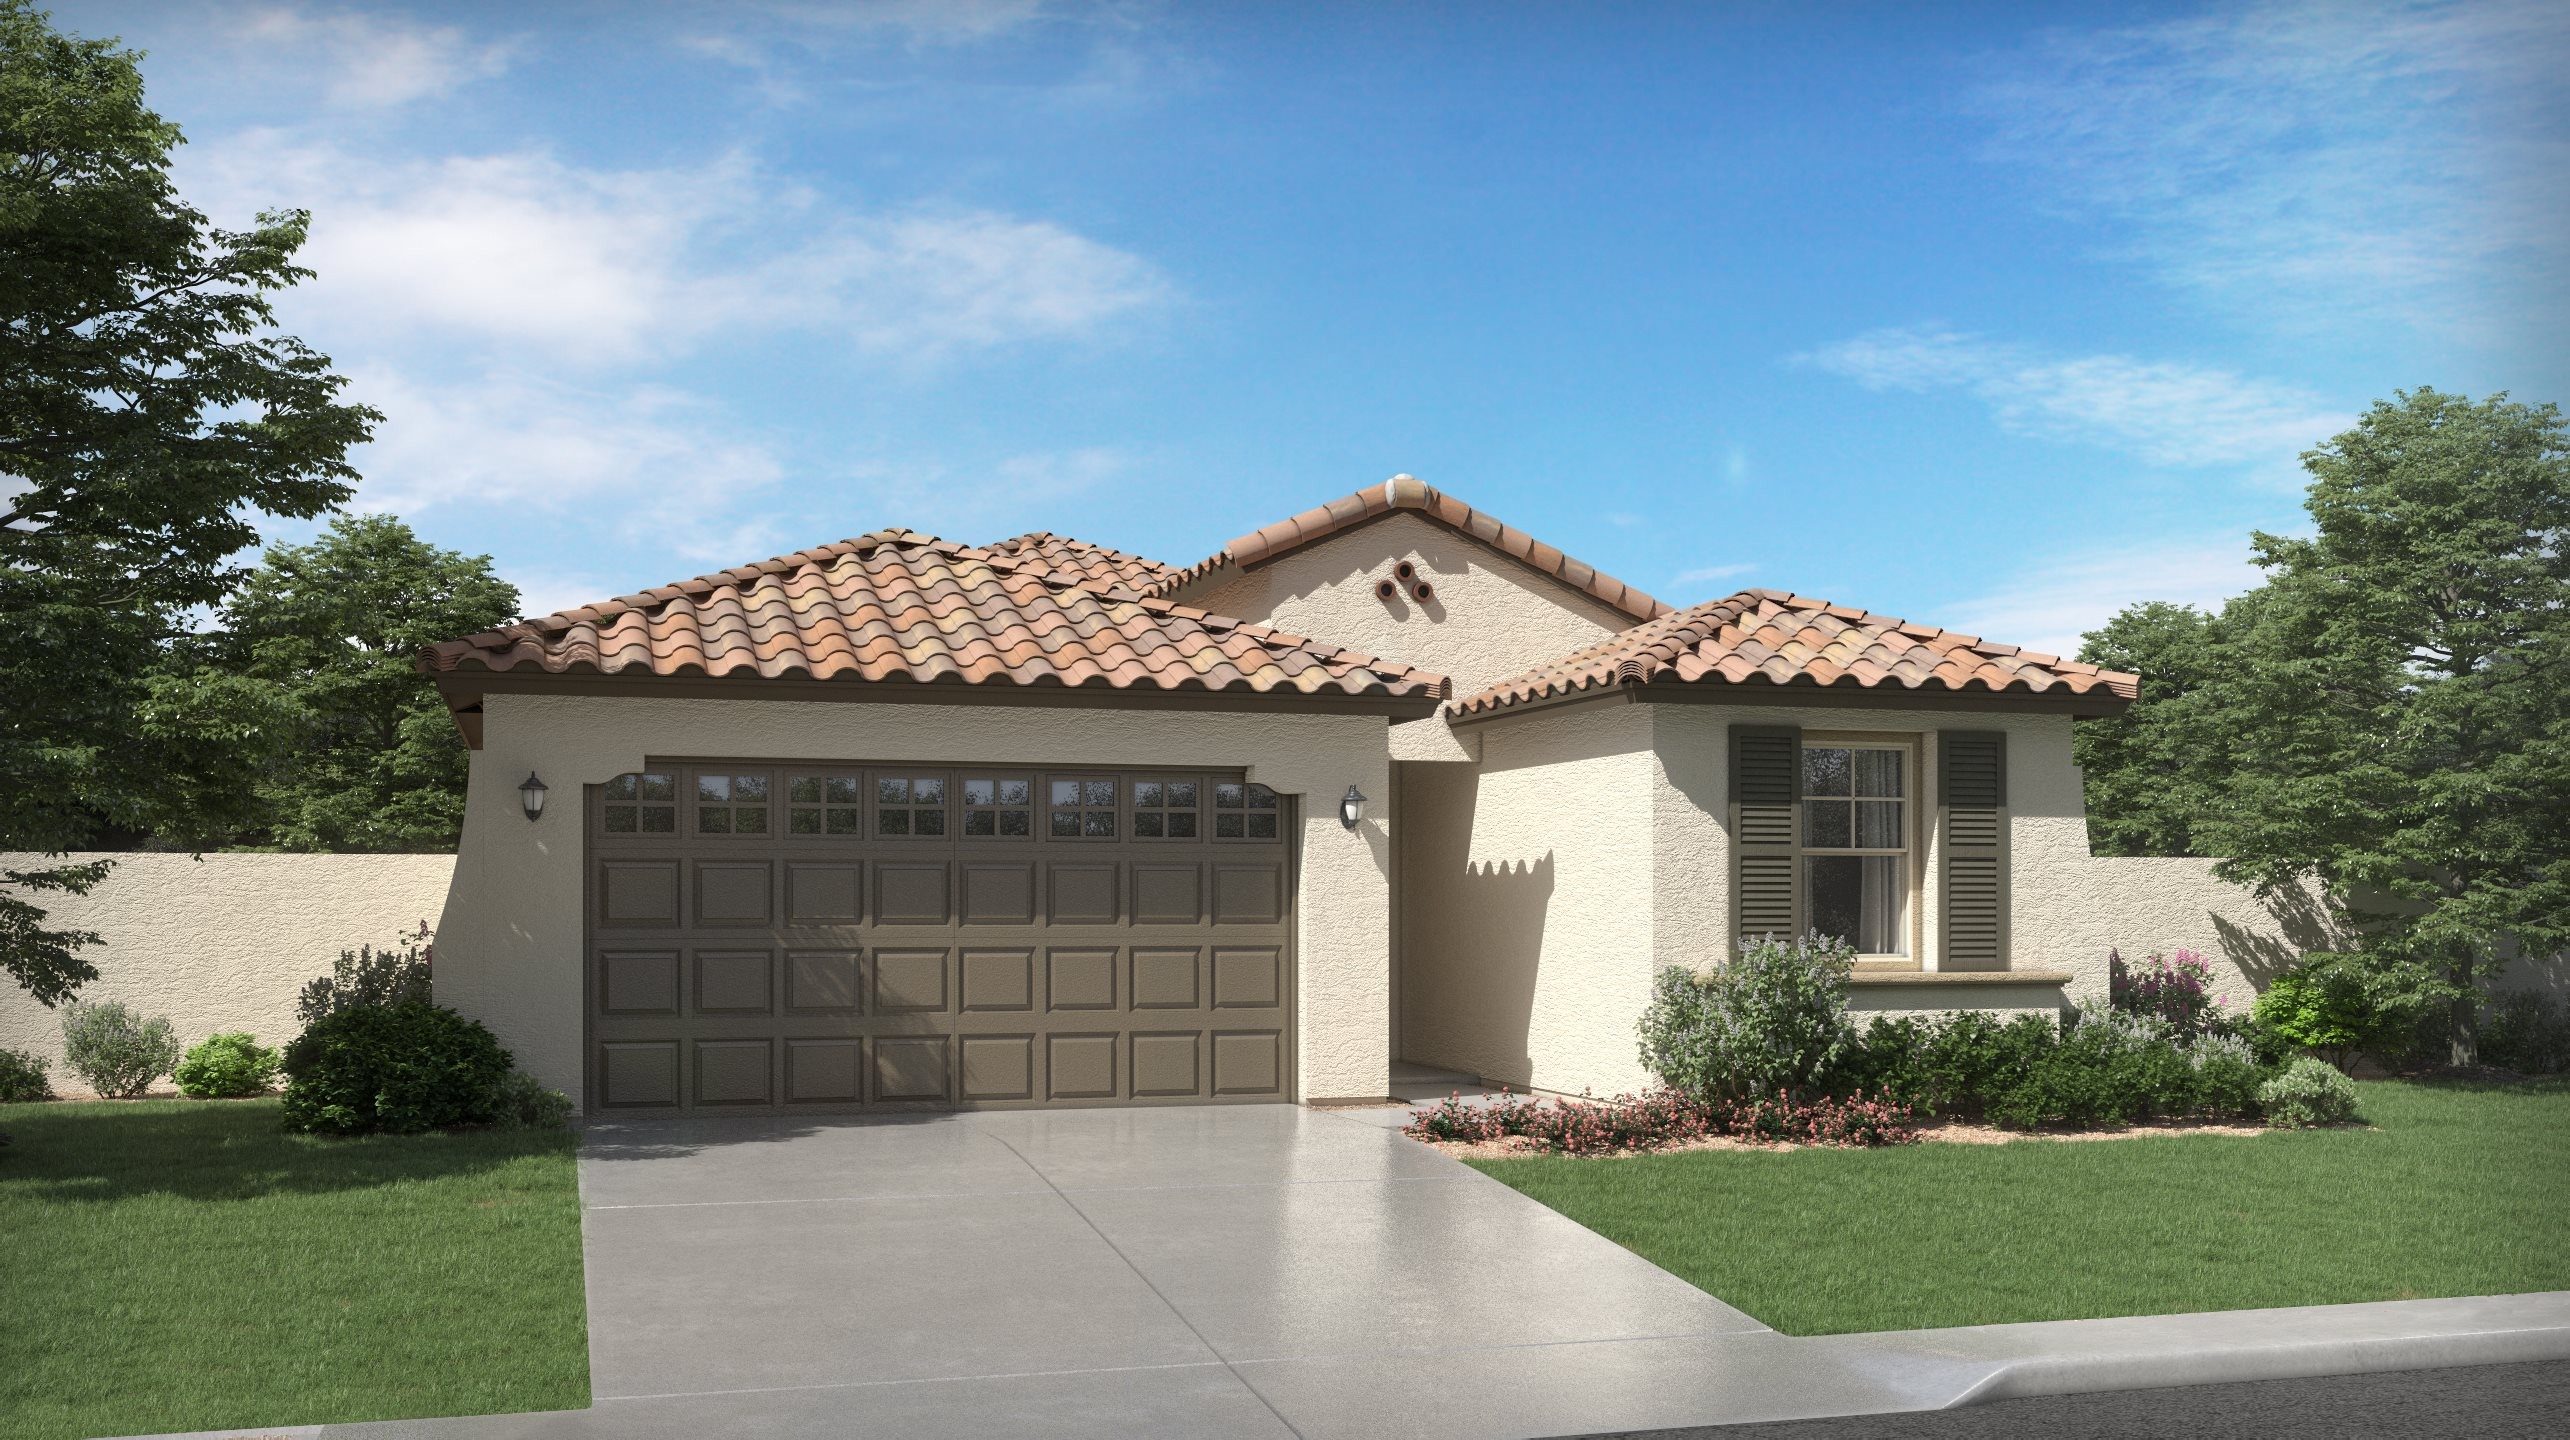 Spanish Colonial Exterior for Plan 3575